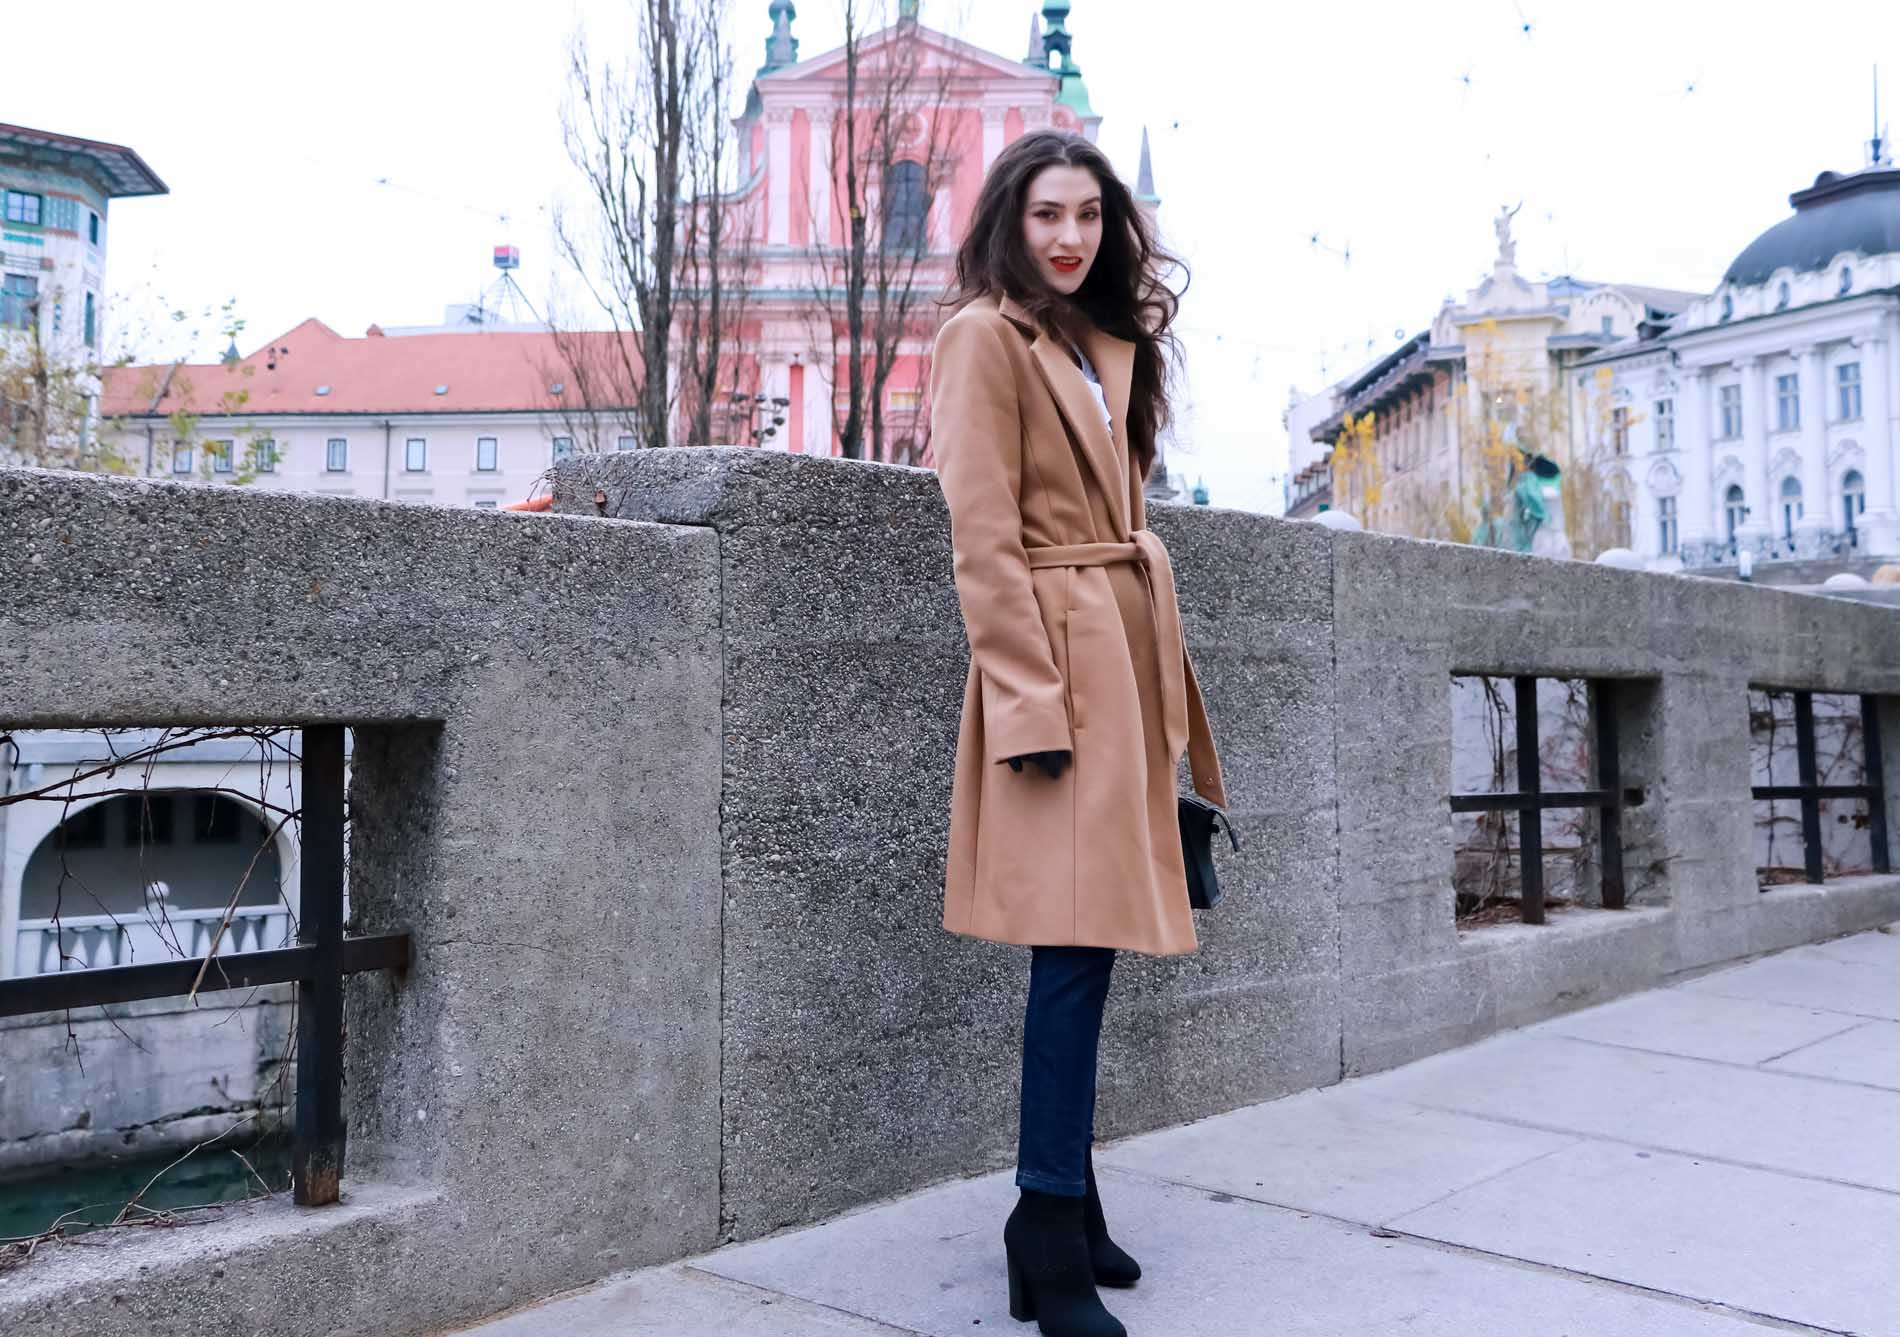 Fashion Blogger Veronika Lipar of Brunette from Wall Street wearing camel wrap coat from Escada, tapered dark denim jeans from A.P.C., small black top handle bag, blue leather gloves and red lipstick, business casual outfit for work, on the street in Ljubljana